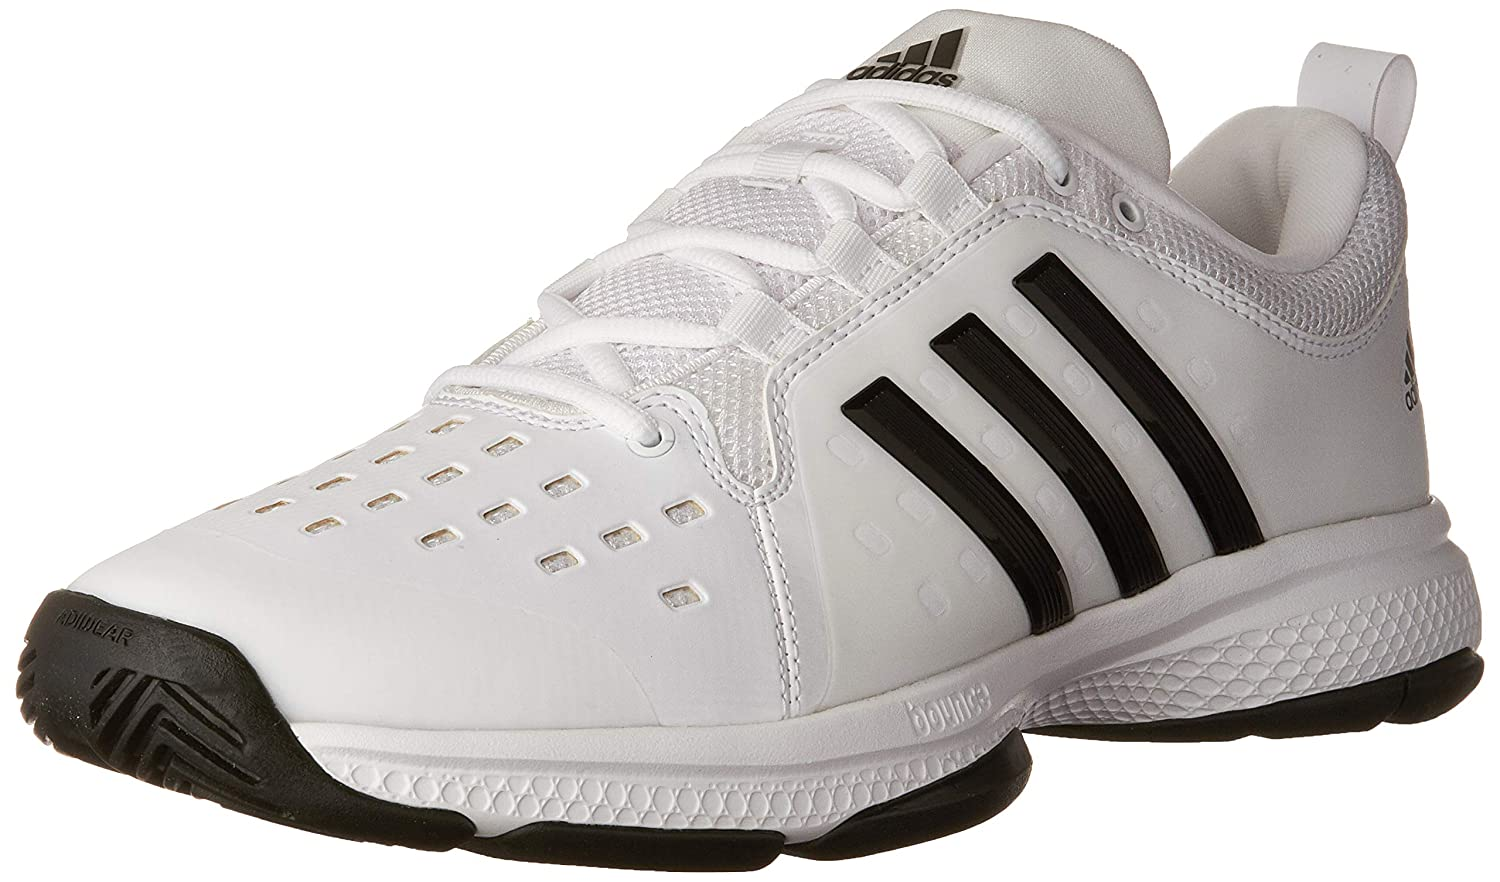 Footwear White Core Black Footwear White adidas Men's Barricade Classic Bounce Tennis shoes